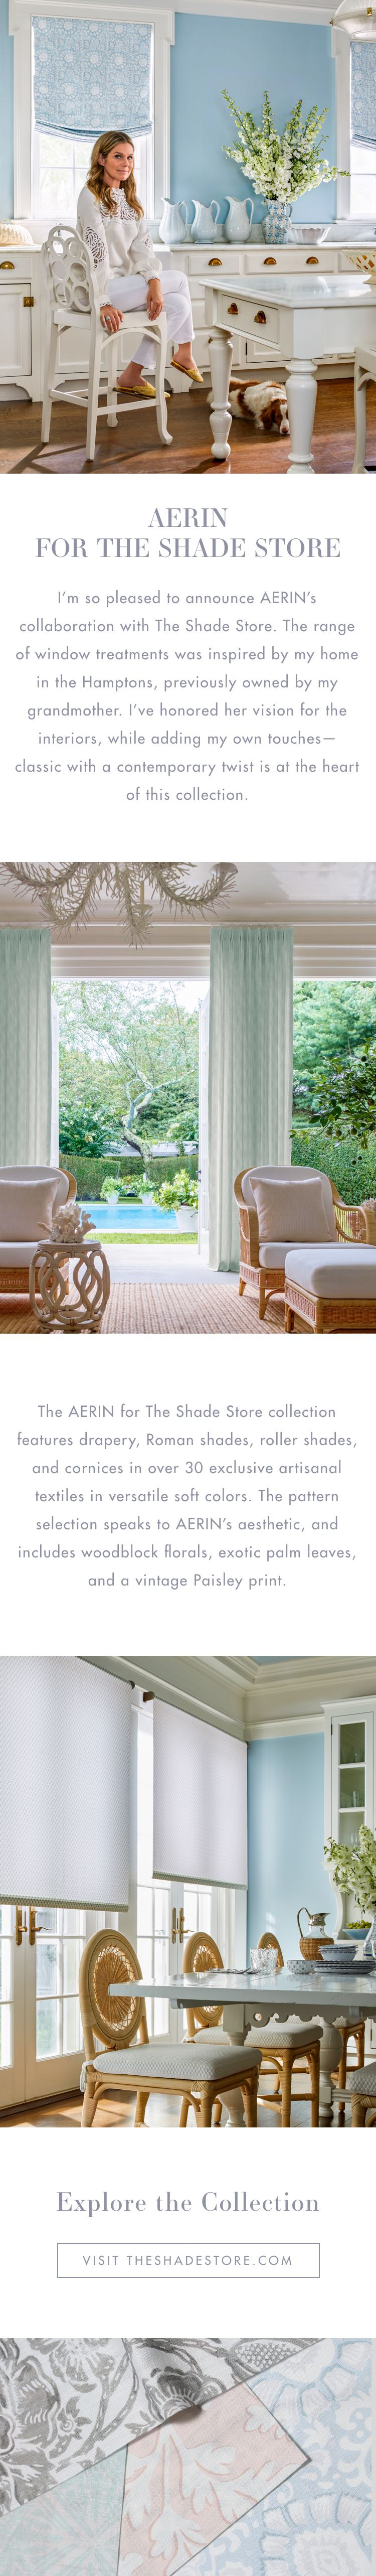 Aerin for The Shade Store: the collection features drapery, Roman shades, roller shades, and cornices in over 30 exclusive artisanal textiles, all inspired by Aerin's home in the Hamptons. Pictures of Aerin's home with various shades. Visit theshadestore.com